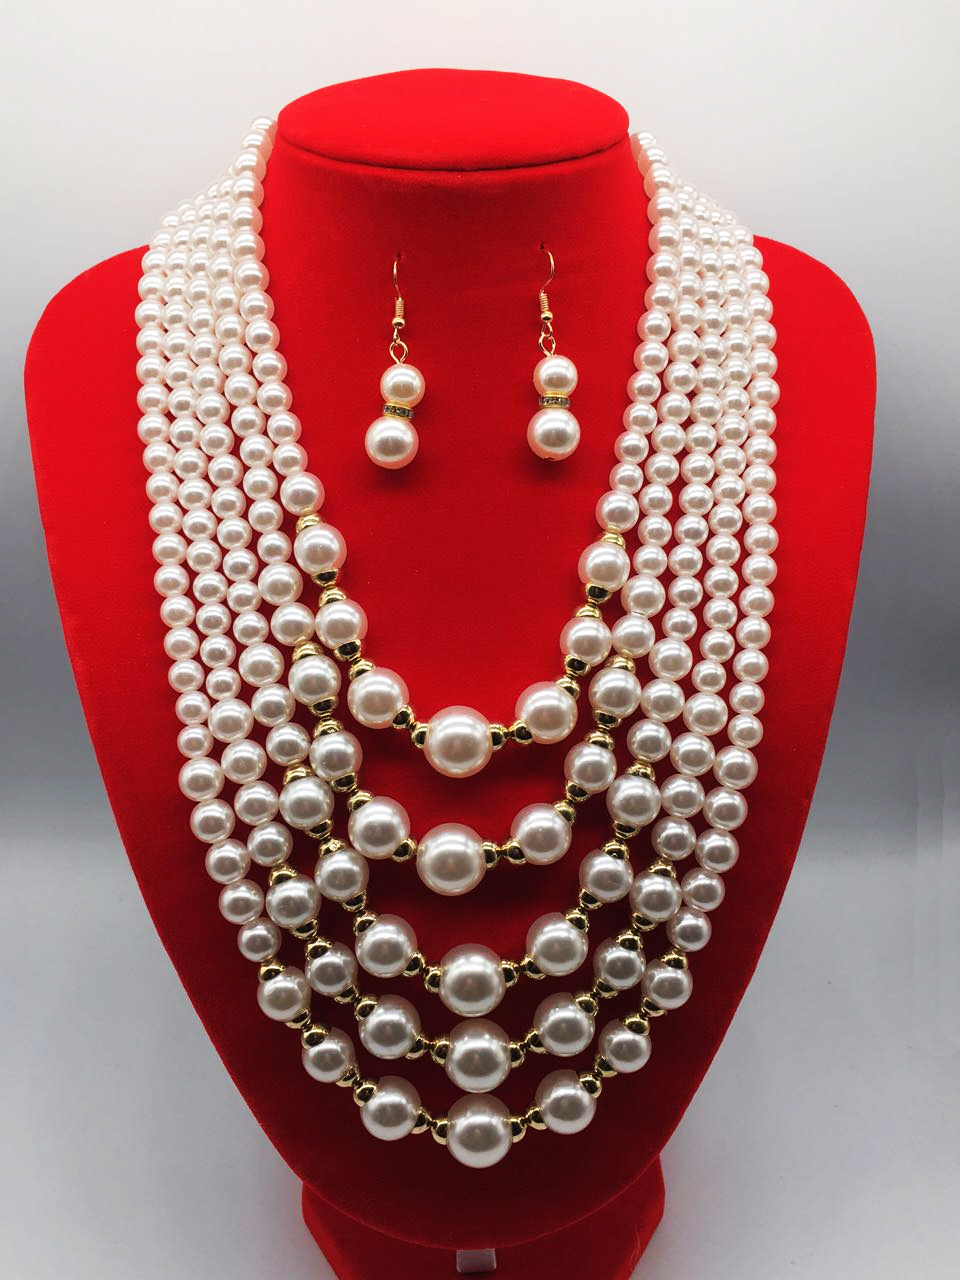 Charm pearl necklace and earring sets simple beaded multi-layered necklace charm jewelry sets factory wholesale